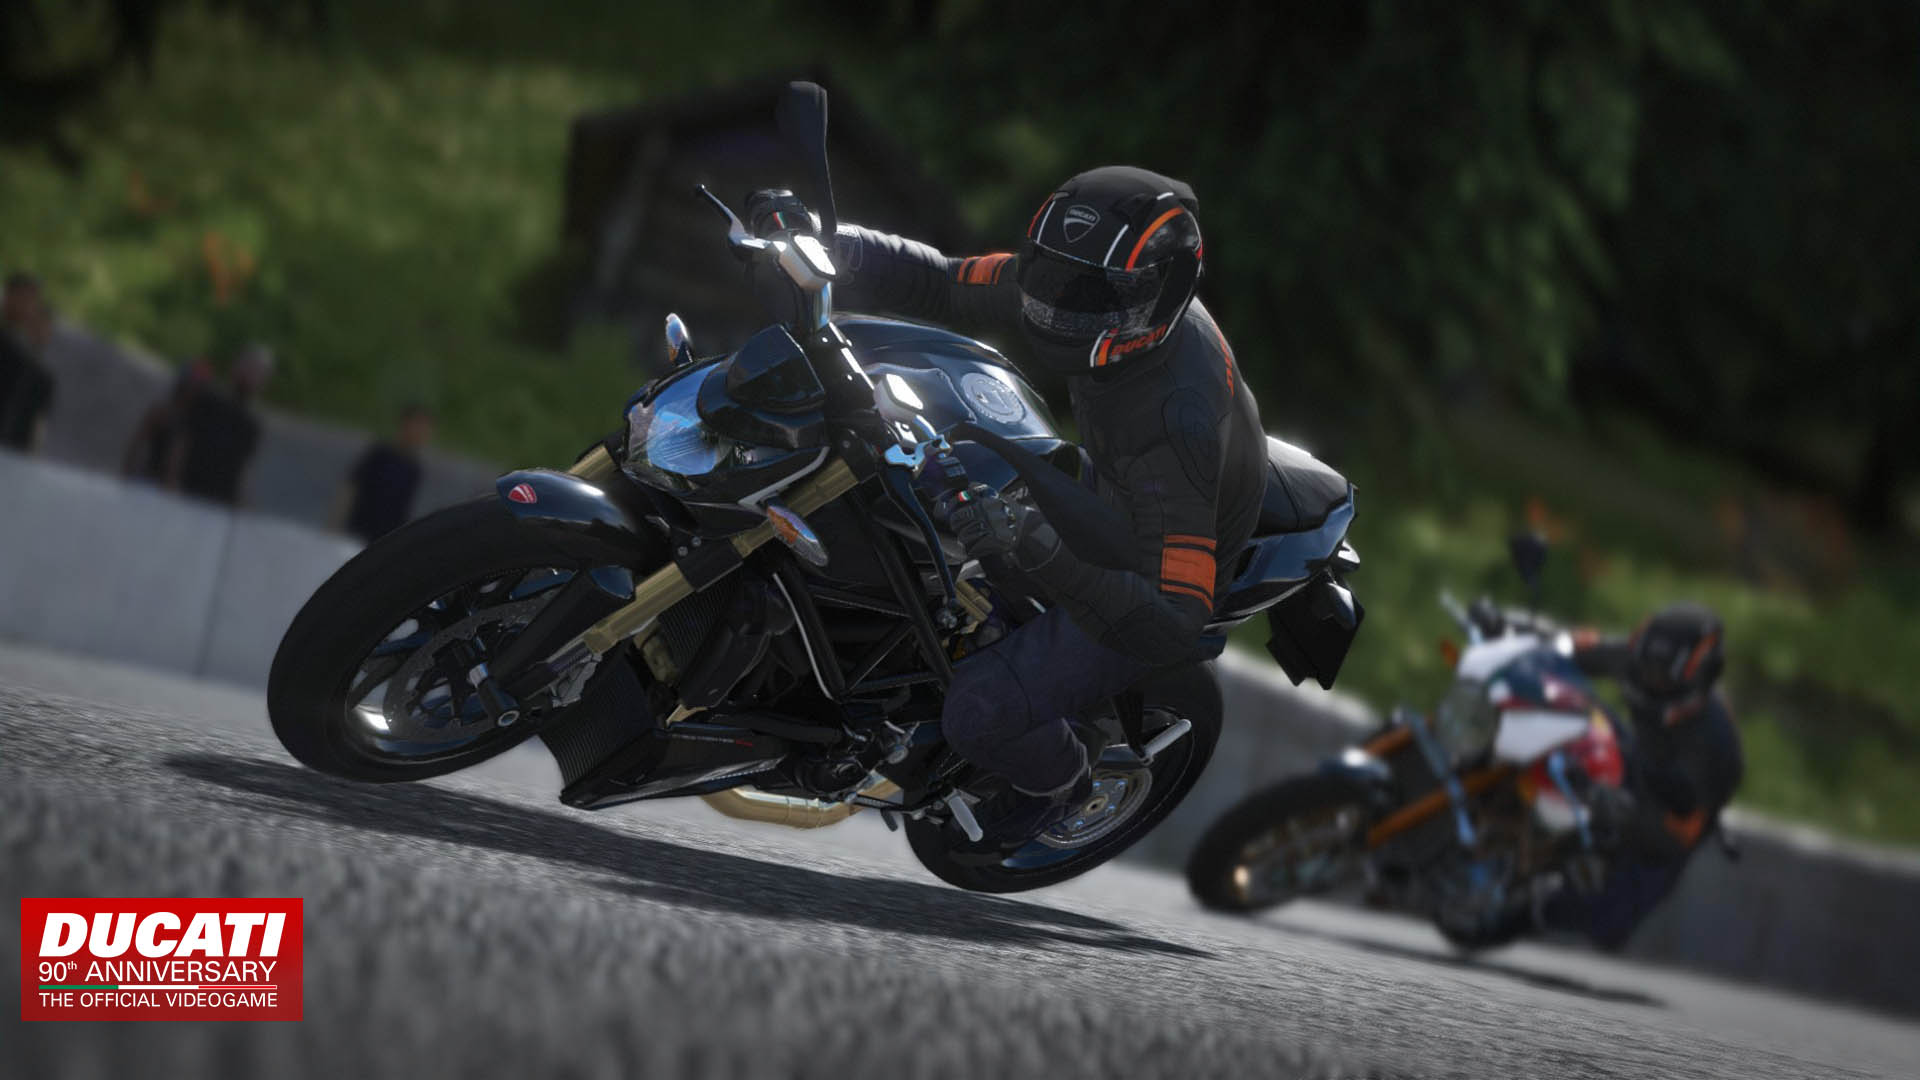 DUCATI - 90th Anniversary Screenshot 1